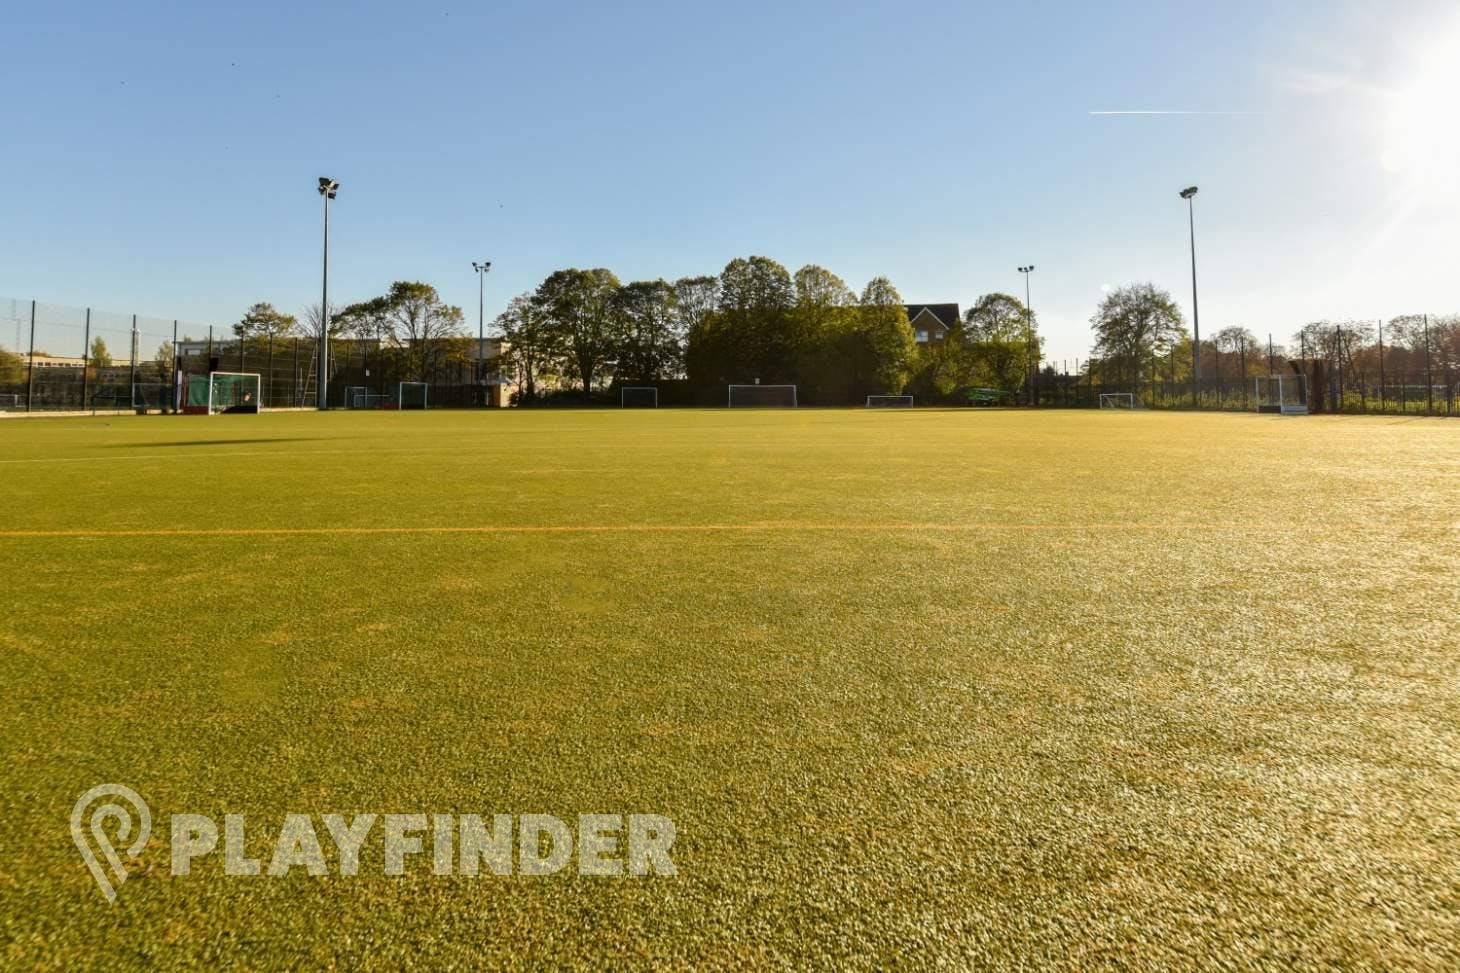 Southbury Leisure Centre 11 a side | Astroturf football pitch